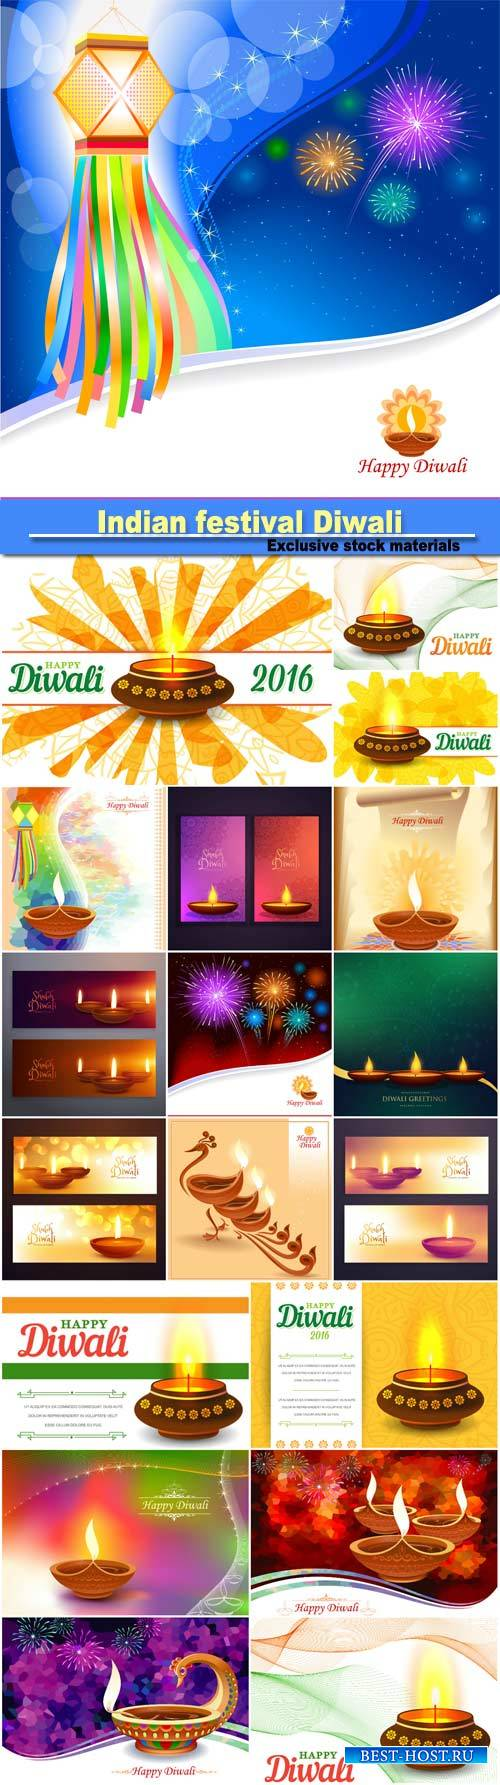 Traditional Indian festival Diwali with lamp vector